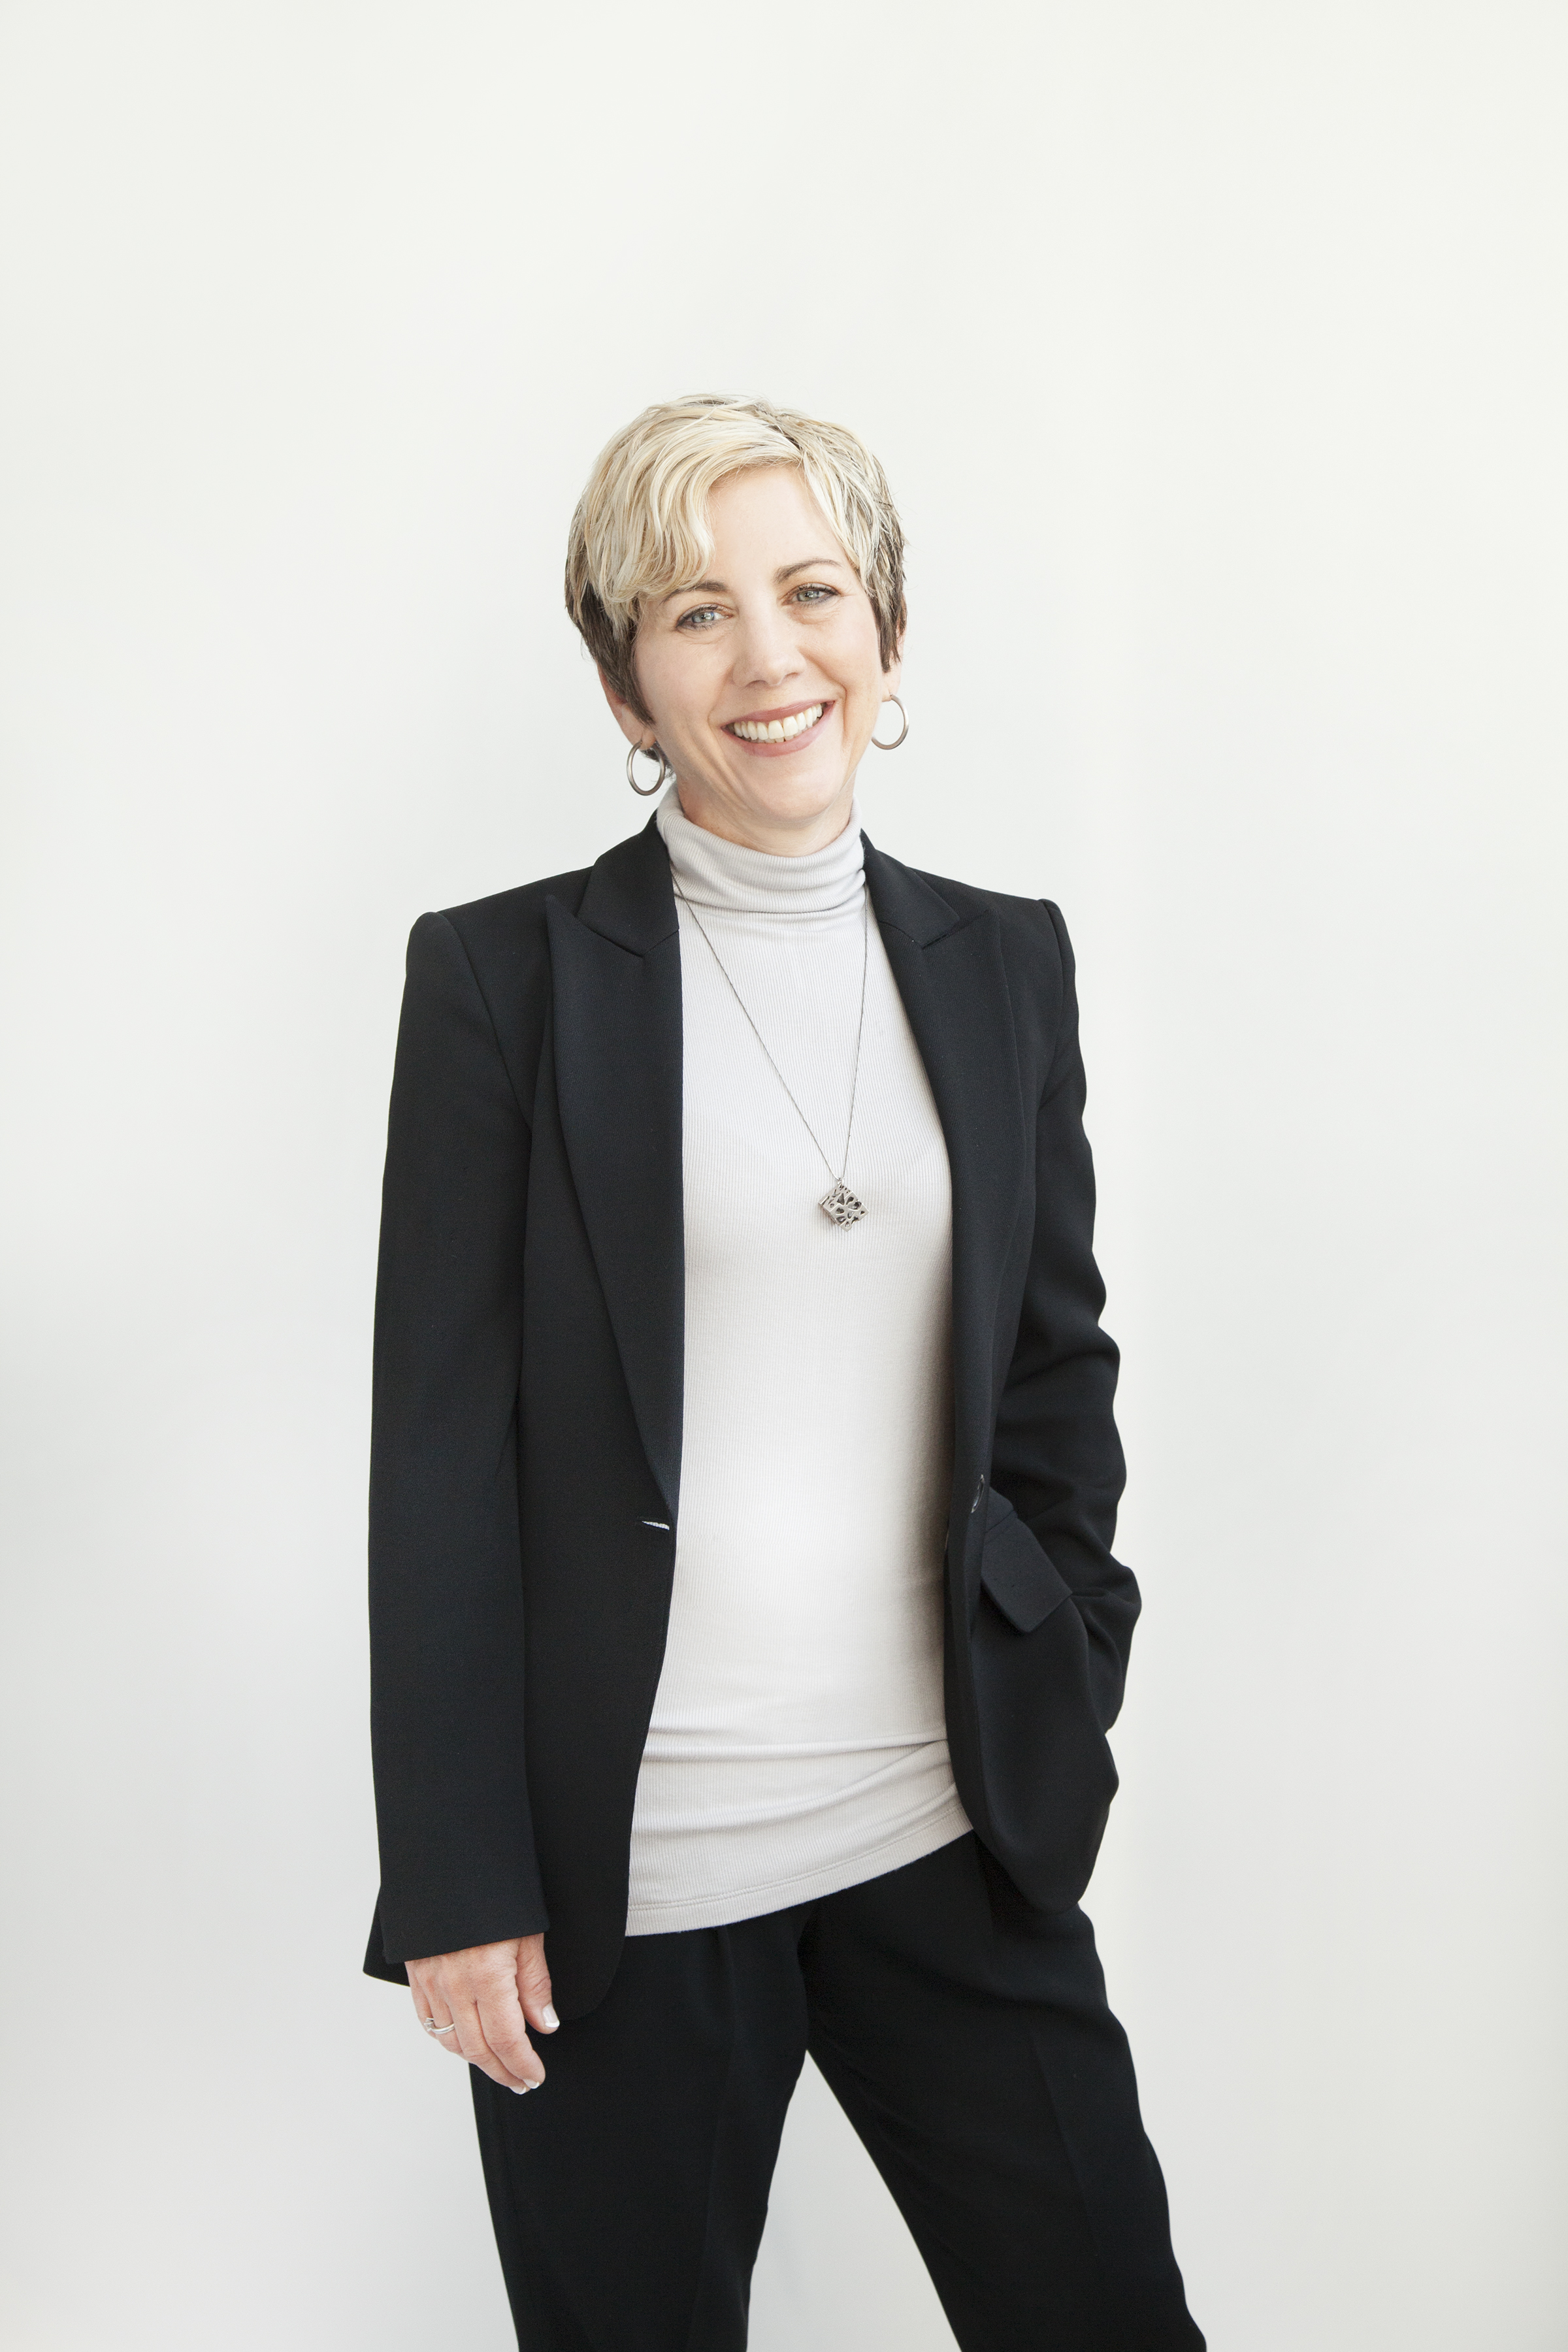 Co-founder Ronna Chisholm